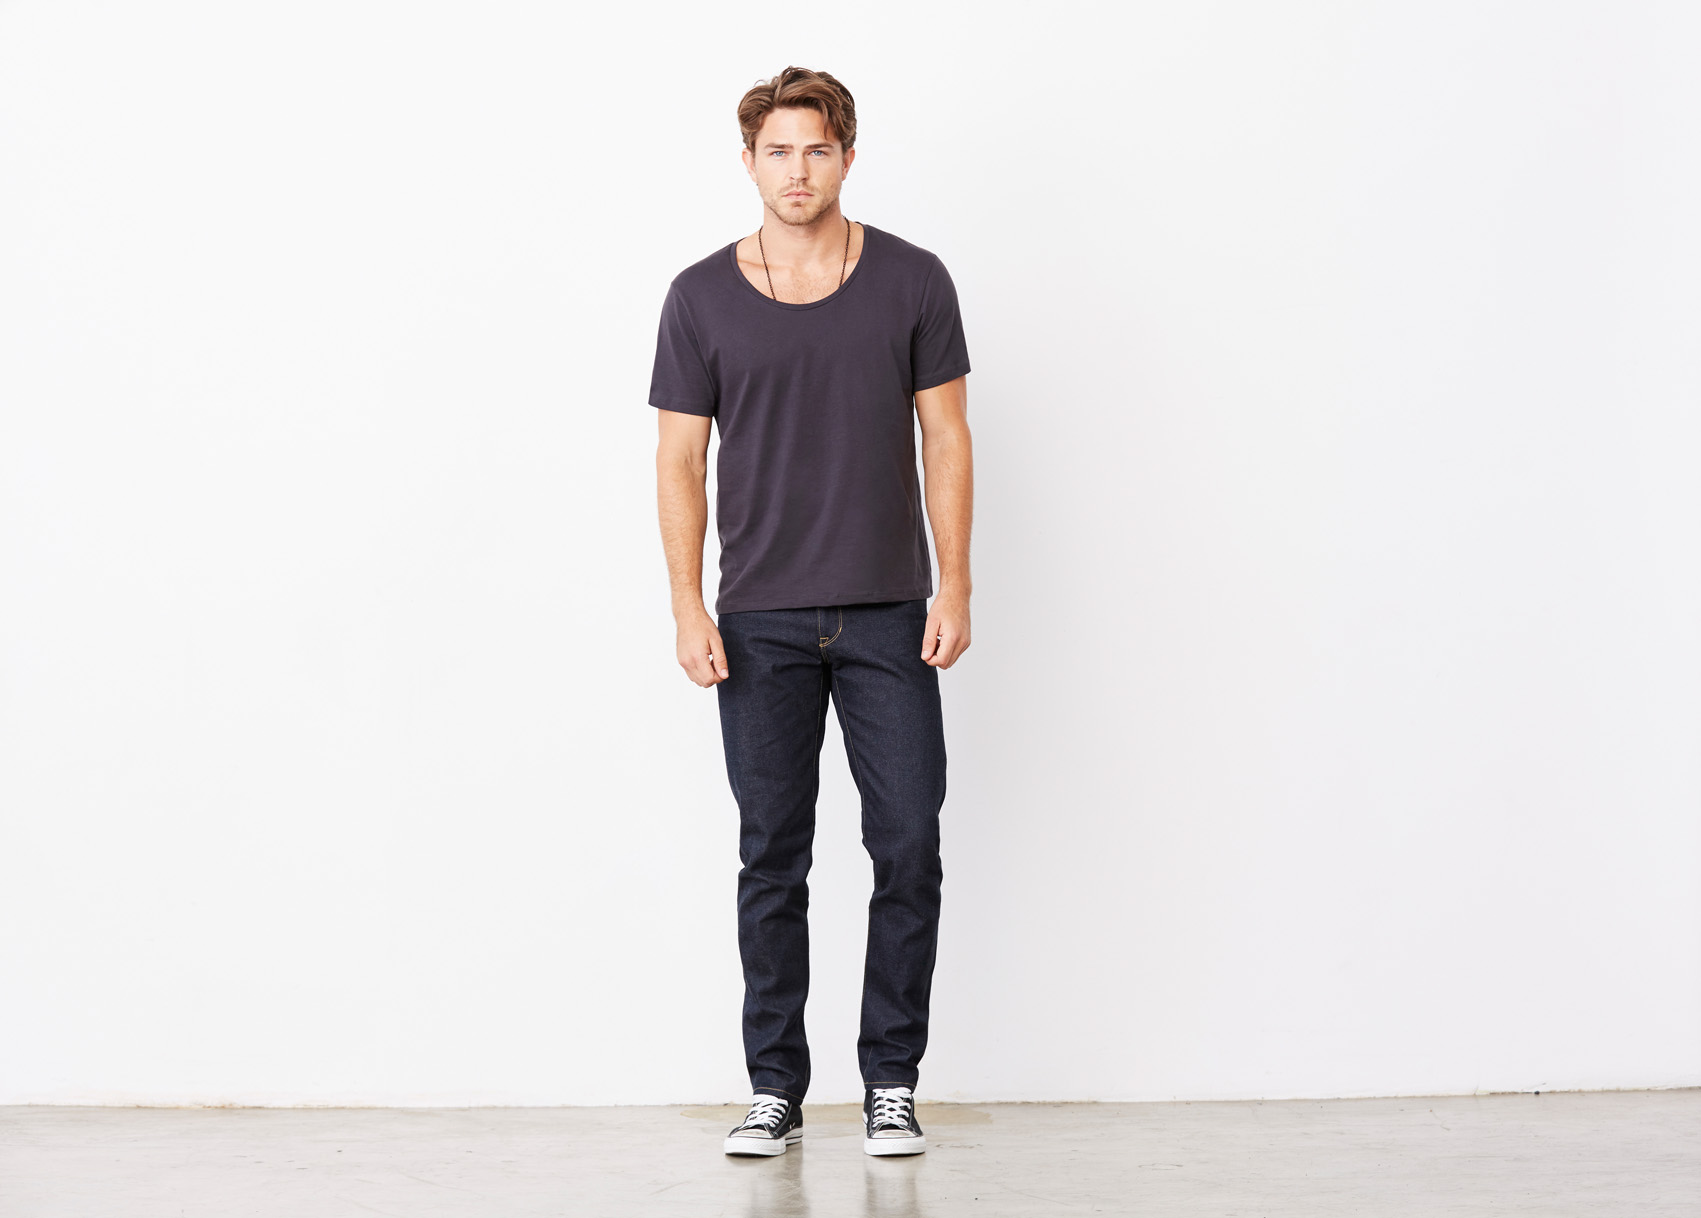 Bel+Can T-shirt Wide Neck